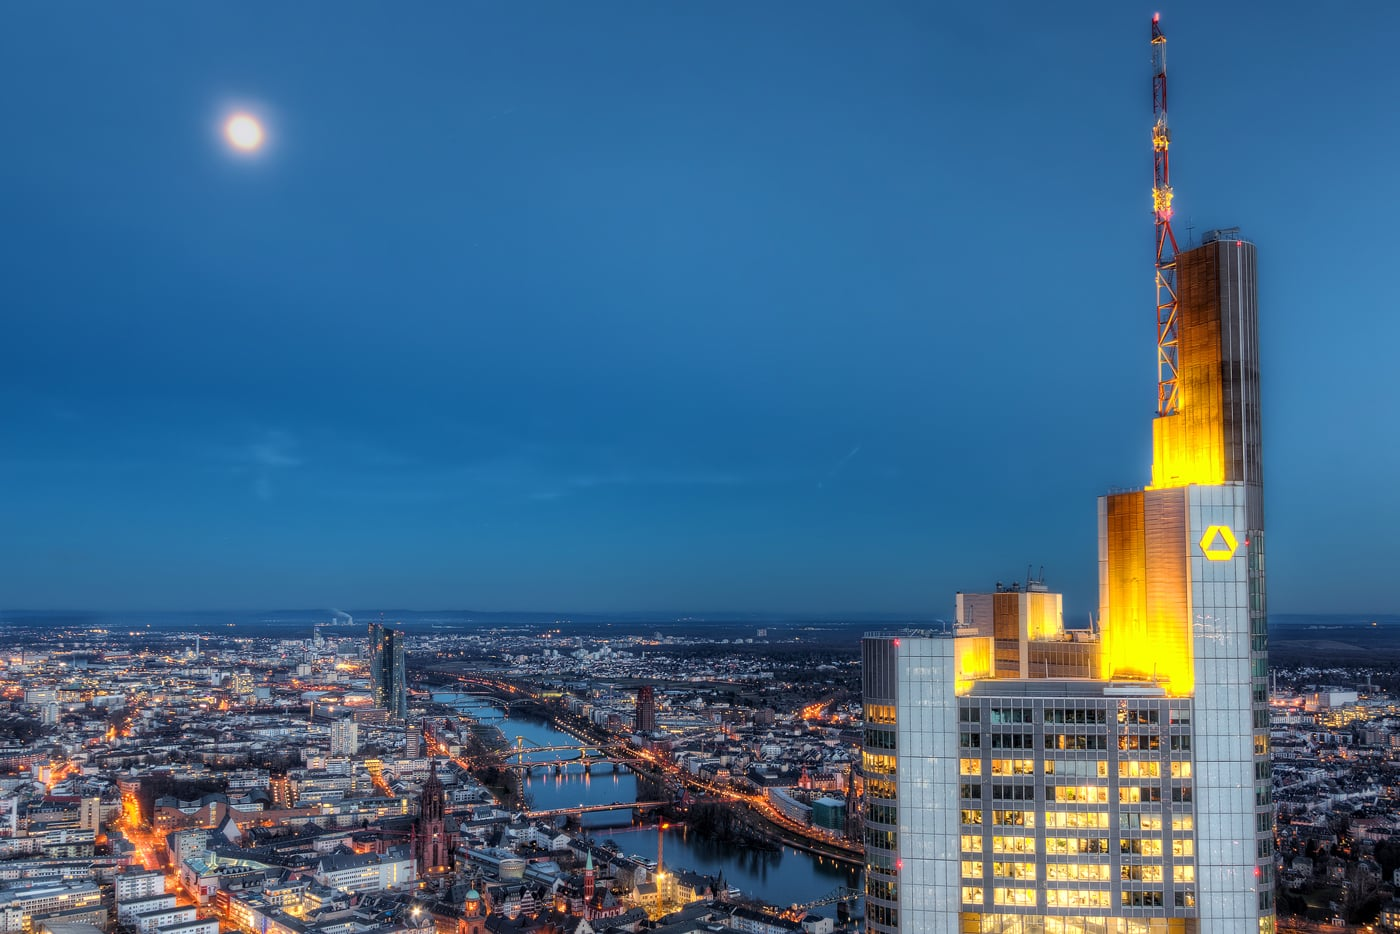 Commerzbank Tower in Frankfurt at full moon